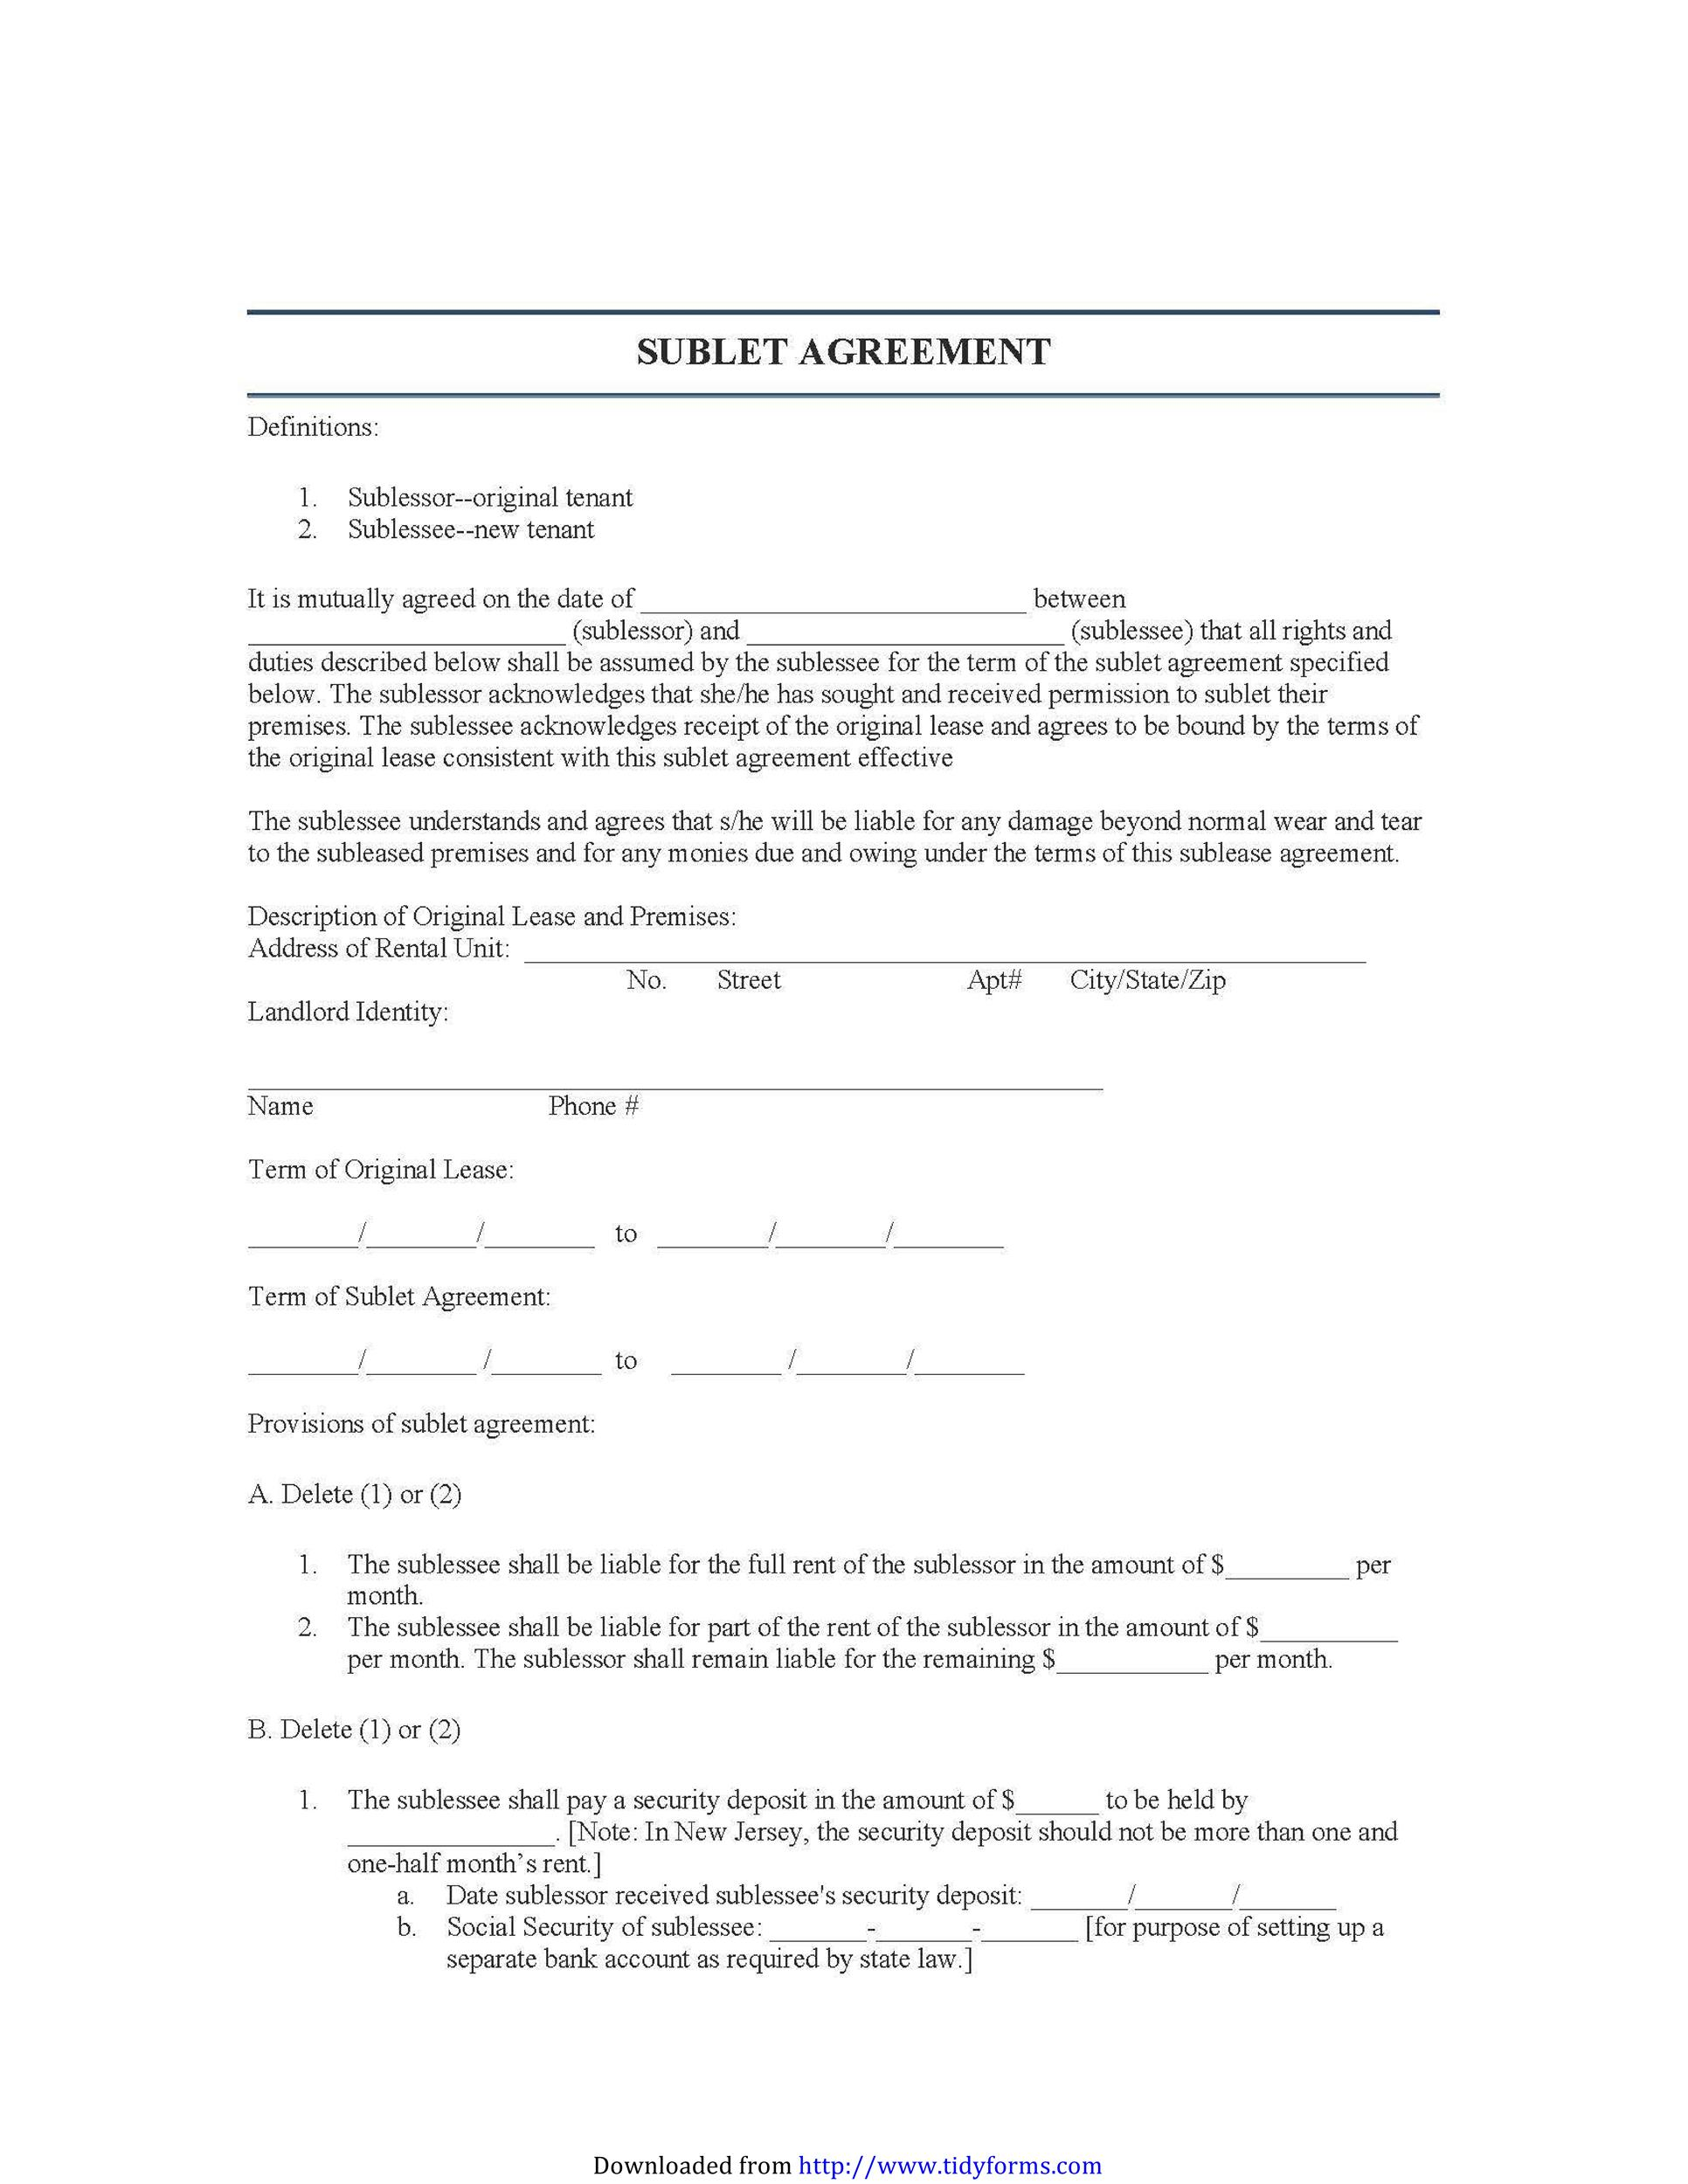 Free Sublease Agreement Template 26